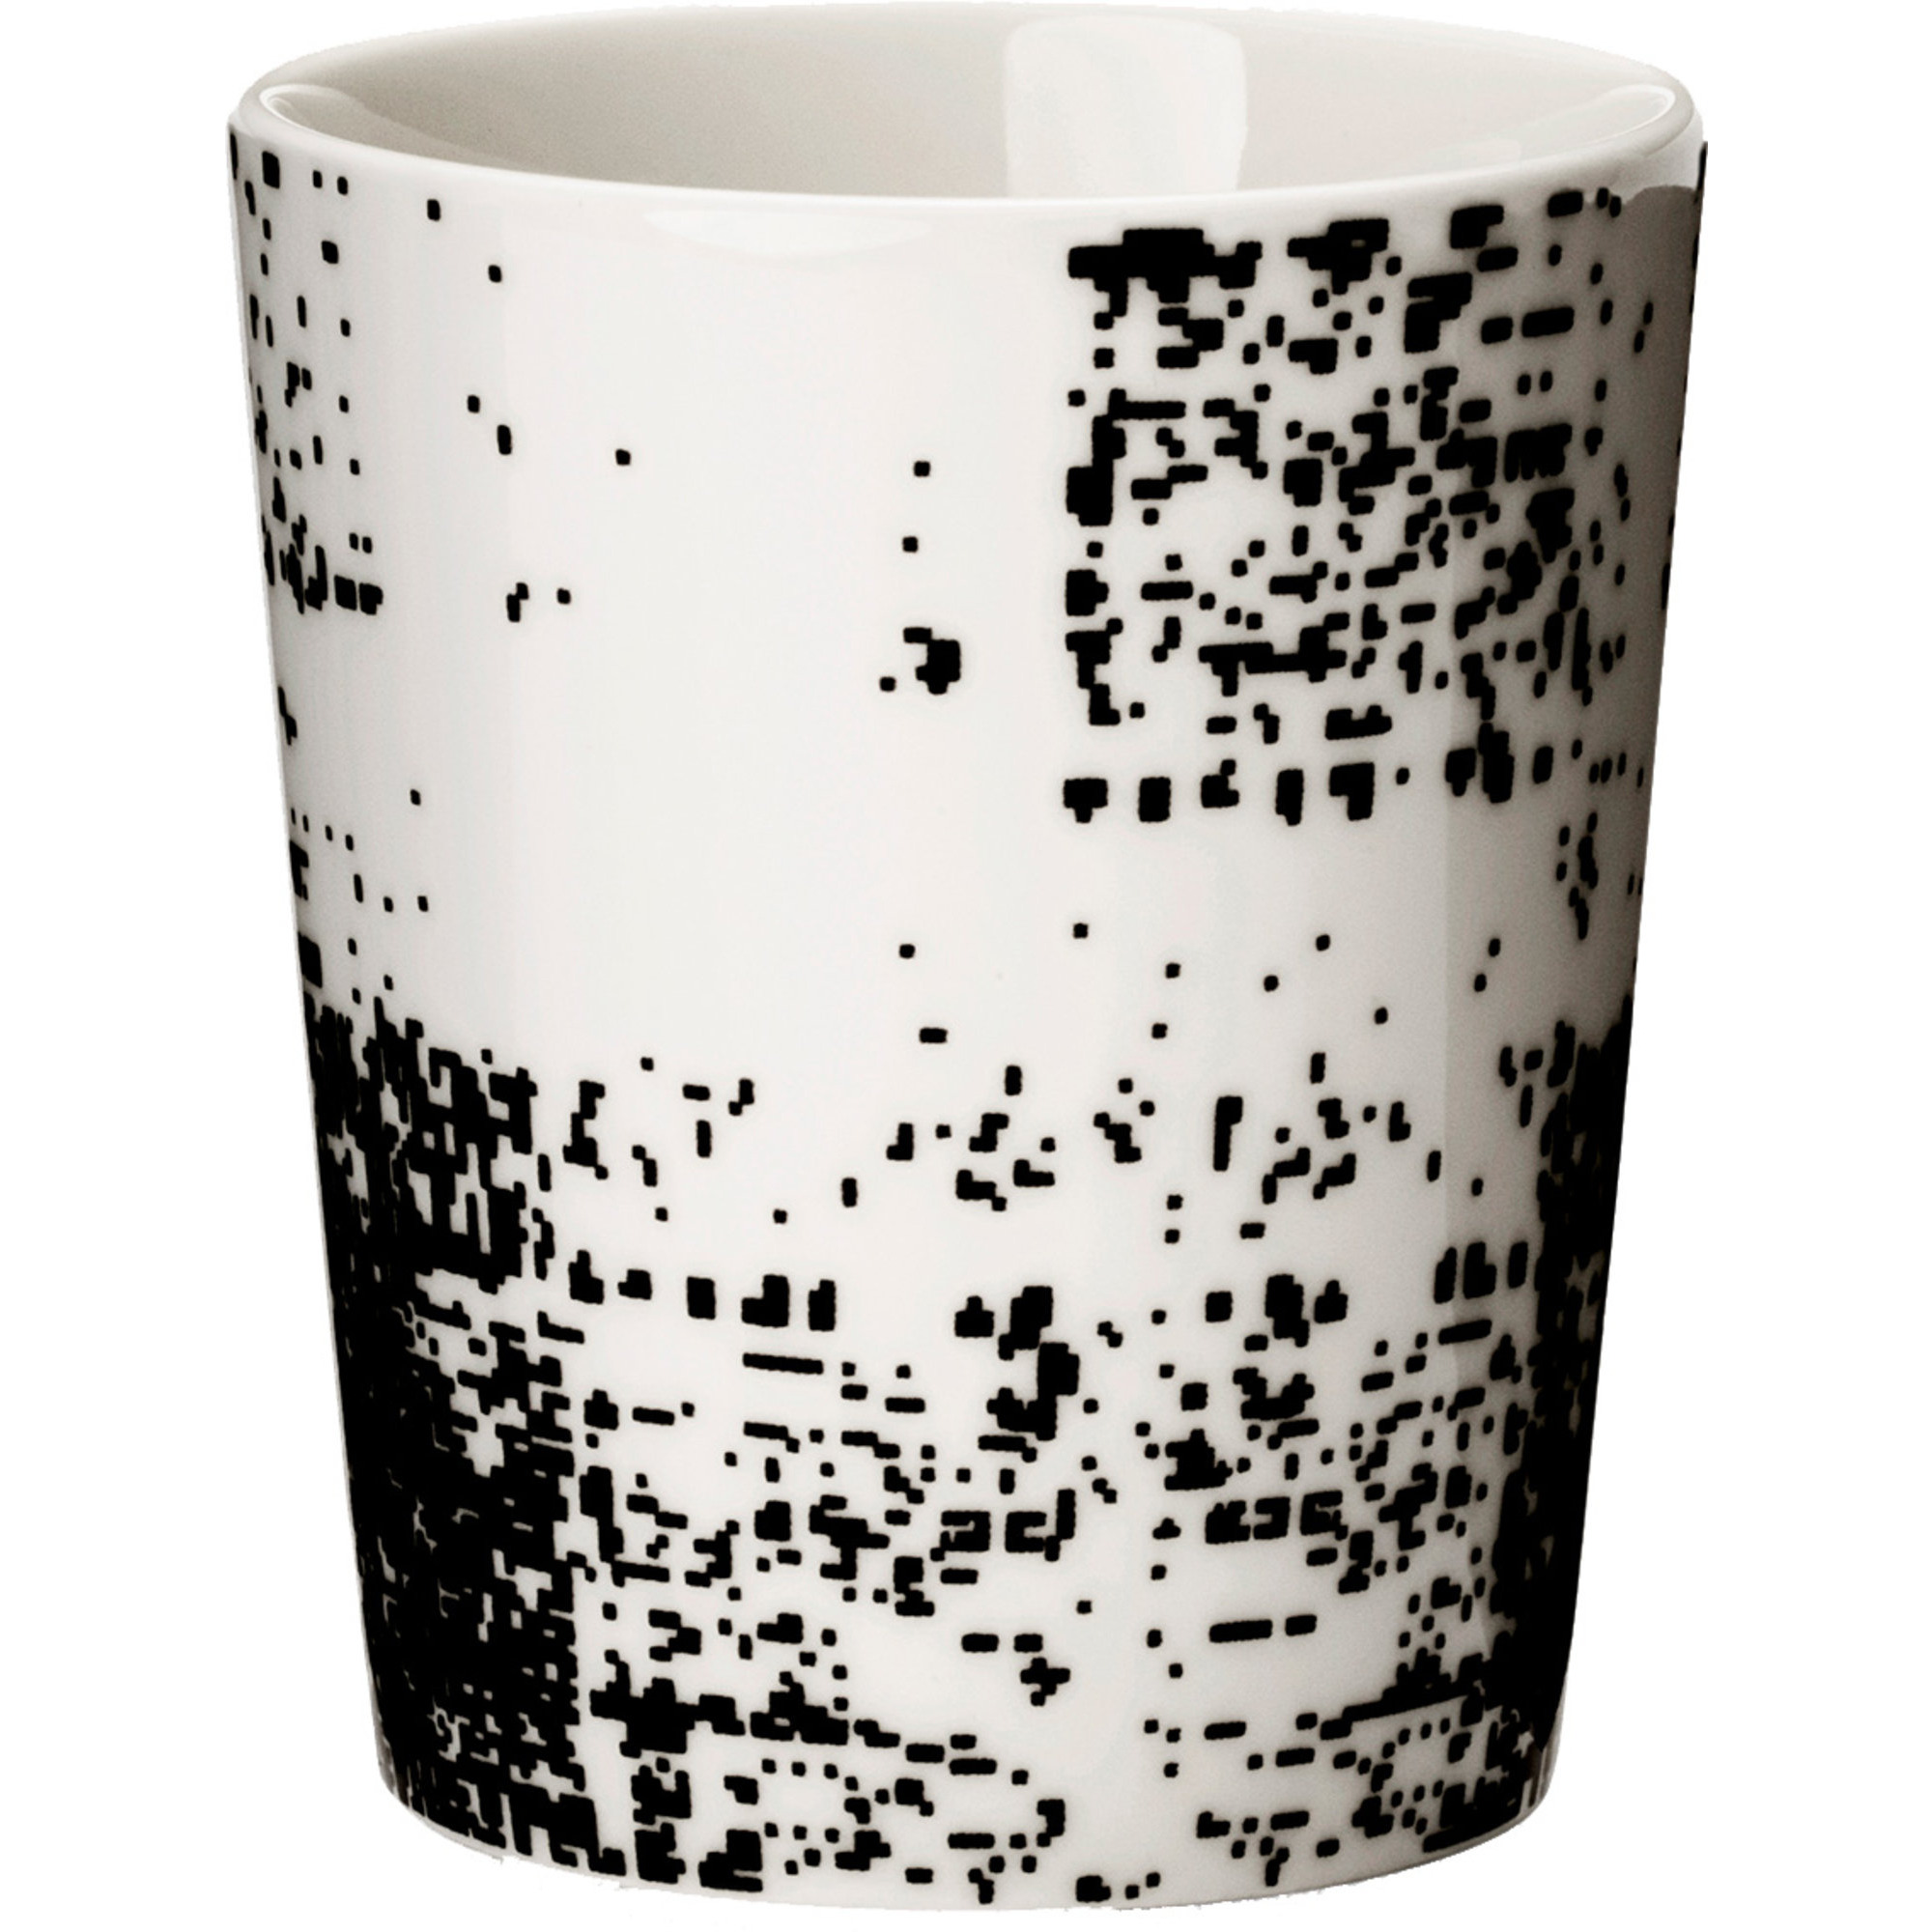 Design House Stockholm Urban Landscape Mugg Overview